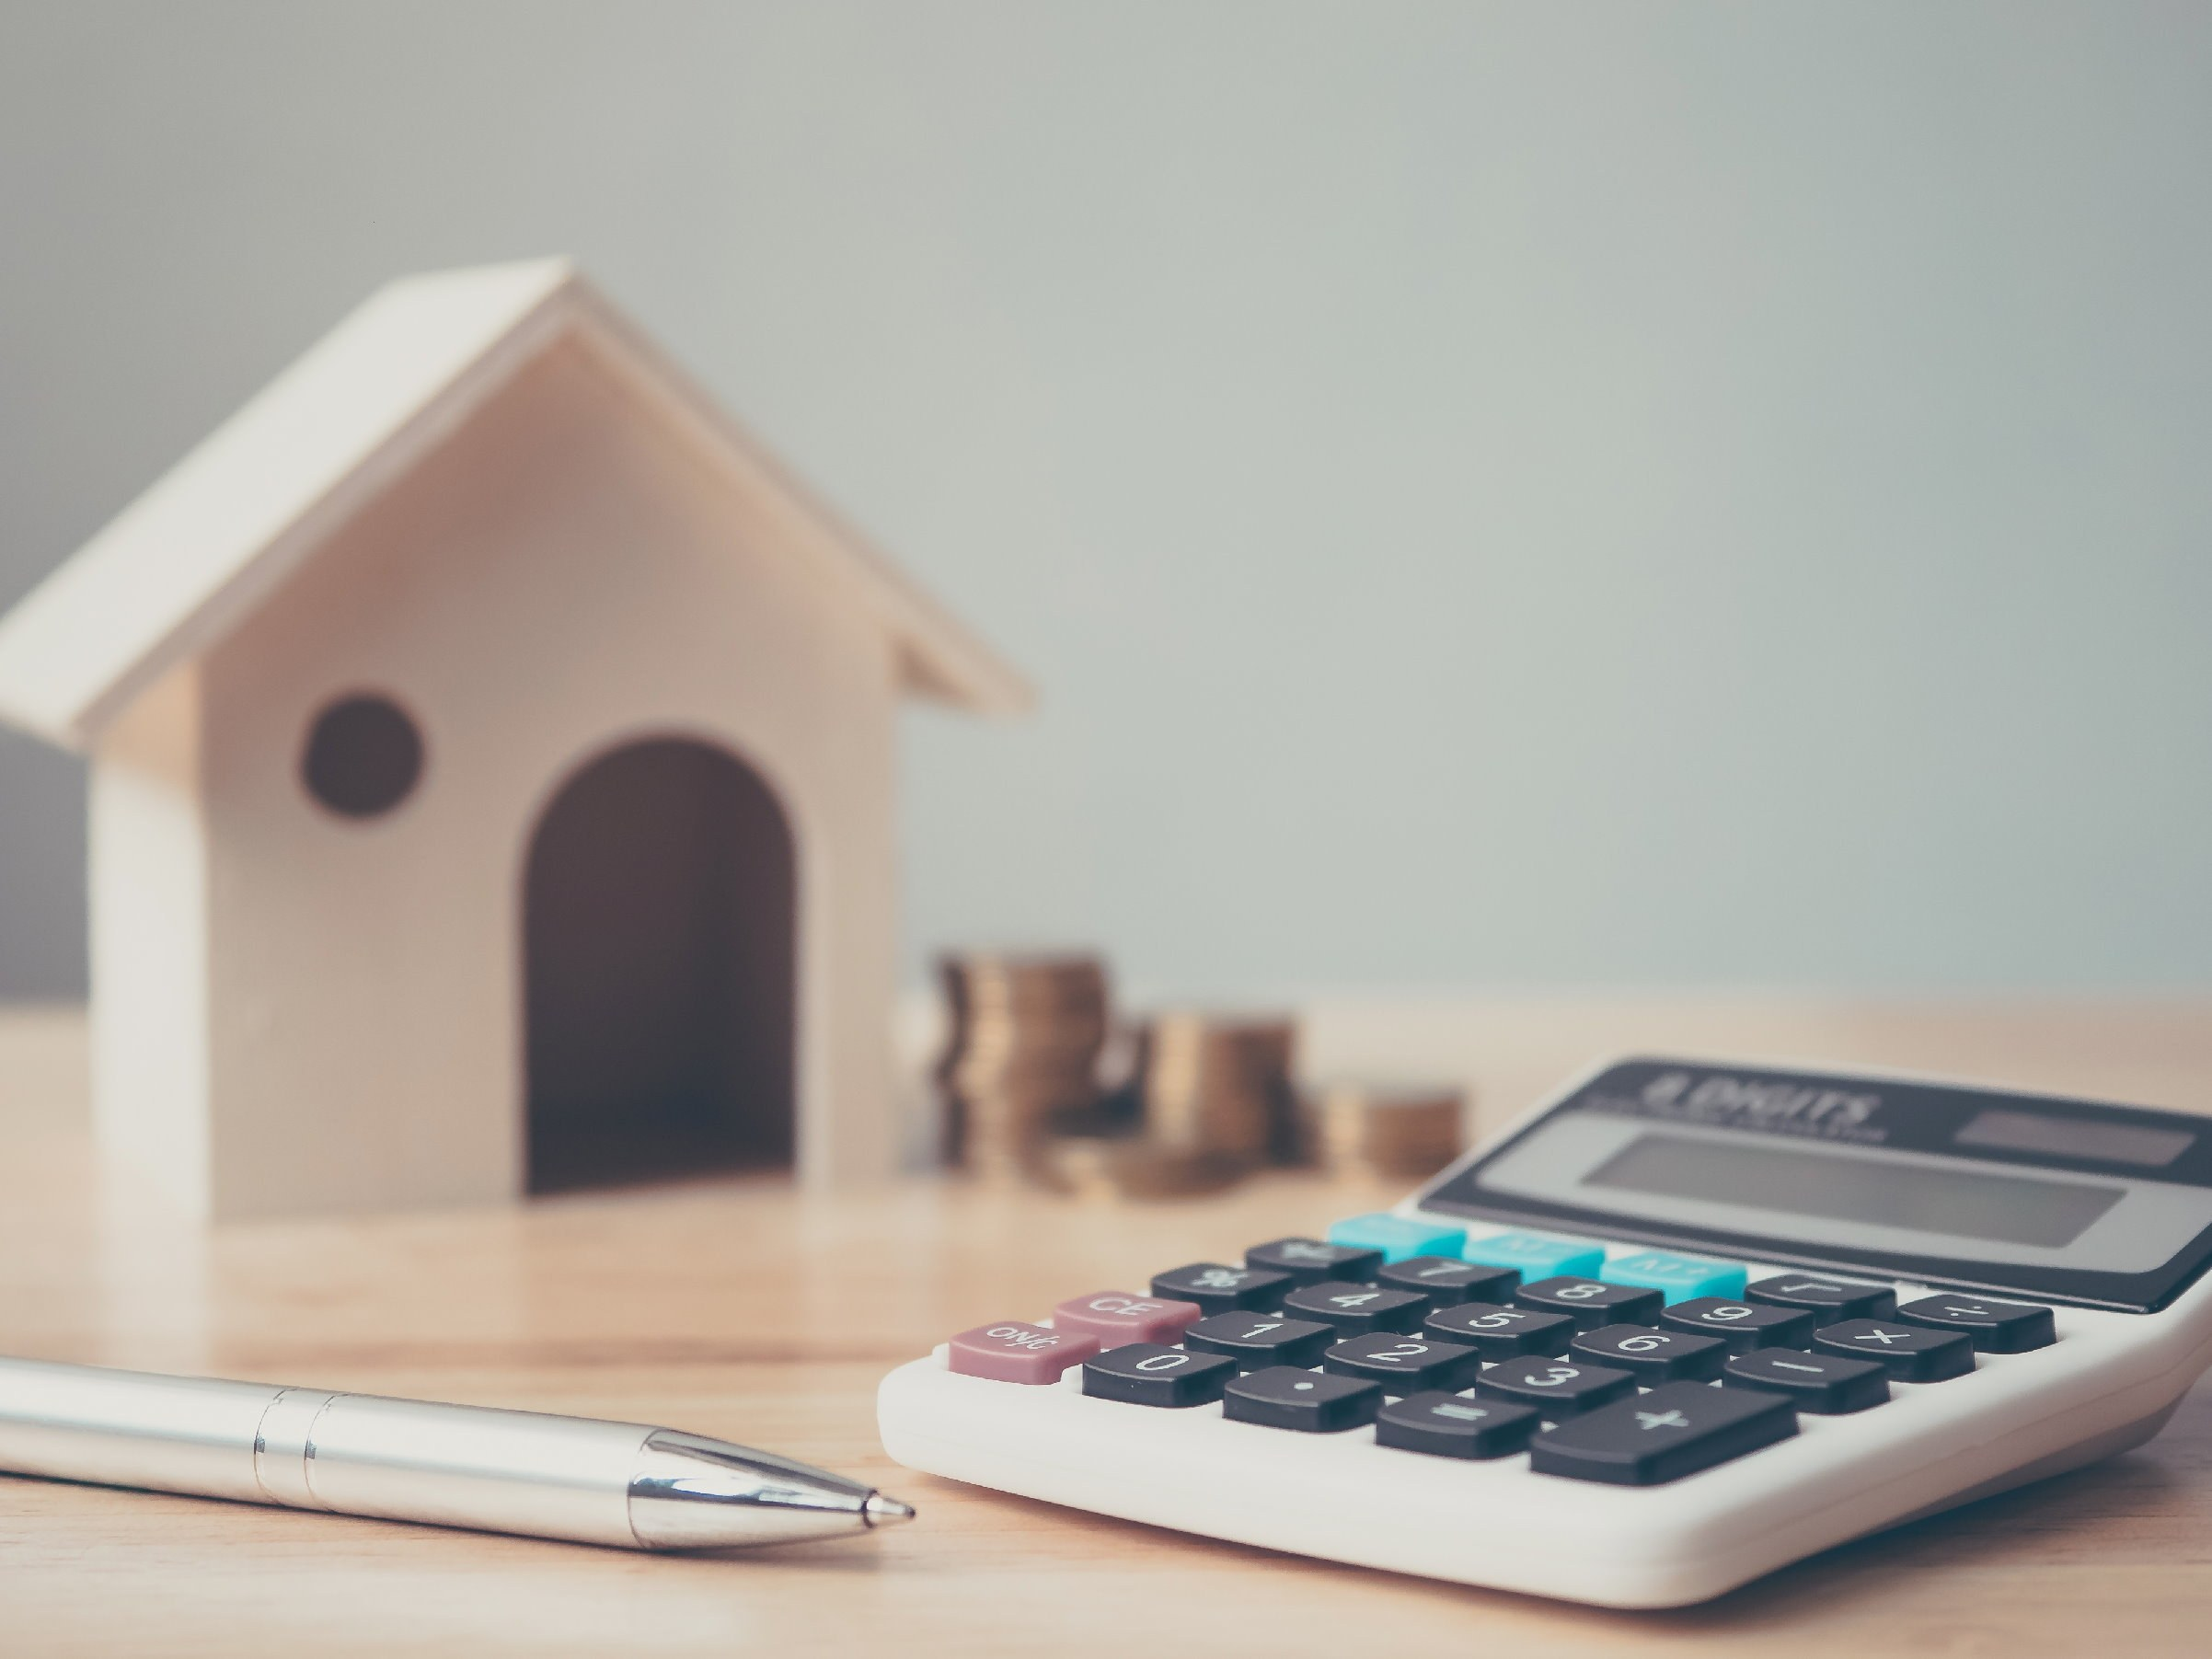 Pros and cons of remortgaging: Should you consider it?